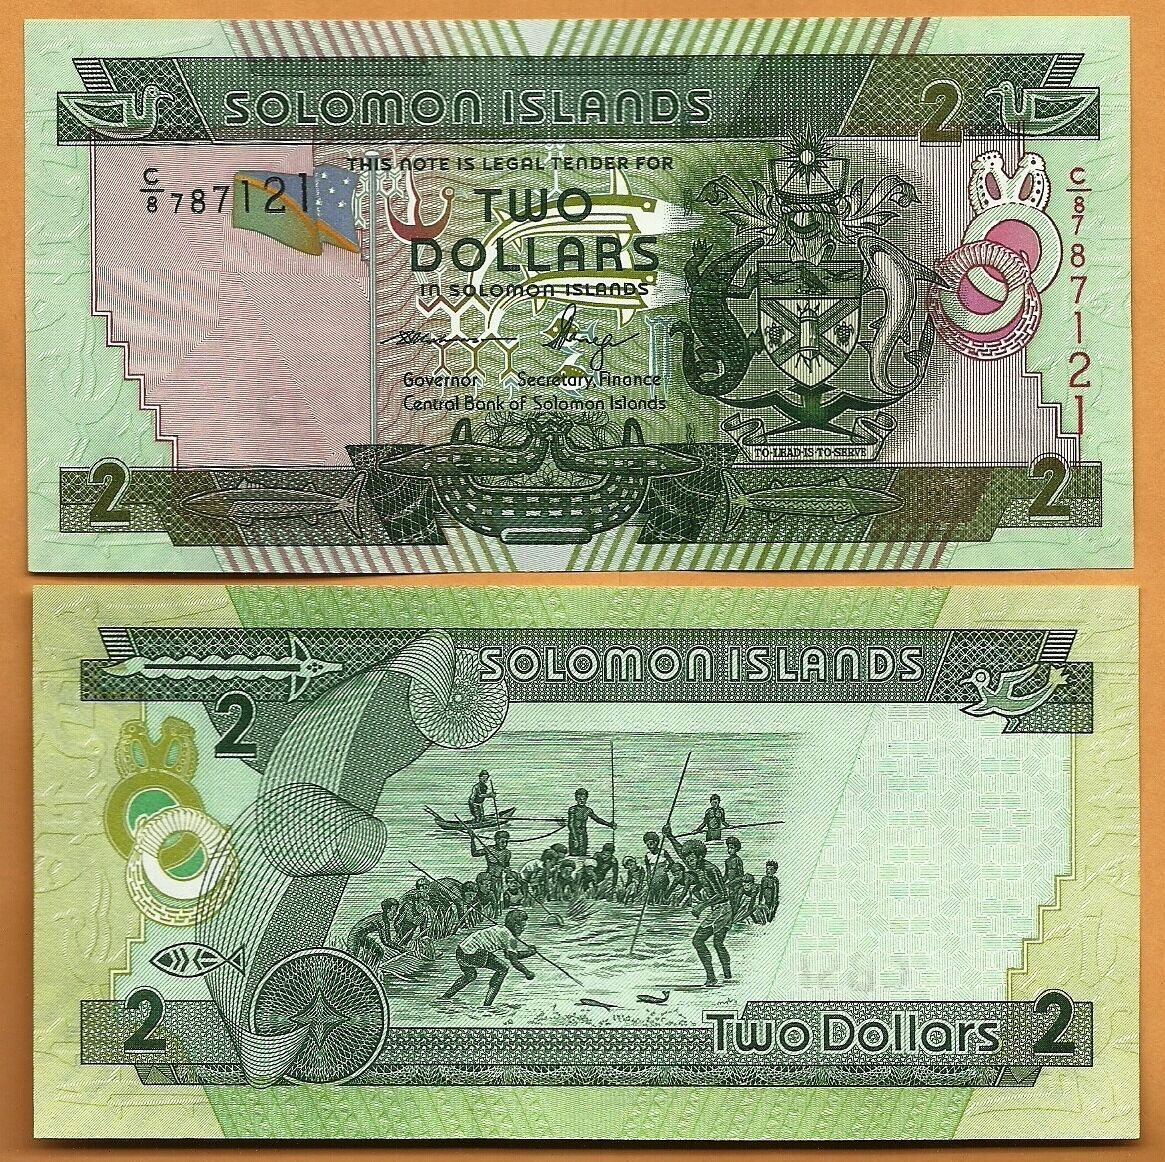 25 2 Solomon Islands 2011  UNC 2 Dollars Banknote Paper Money Bill P